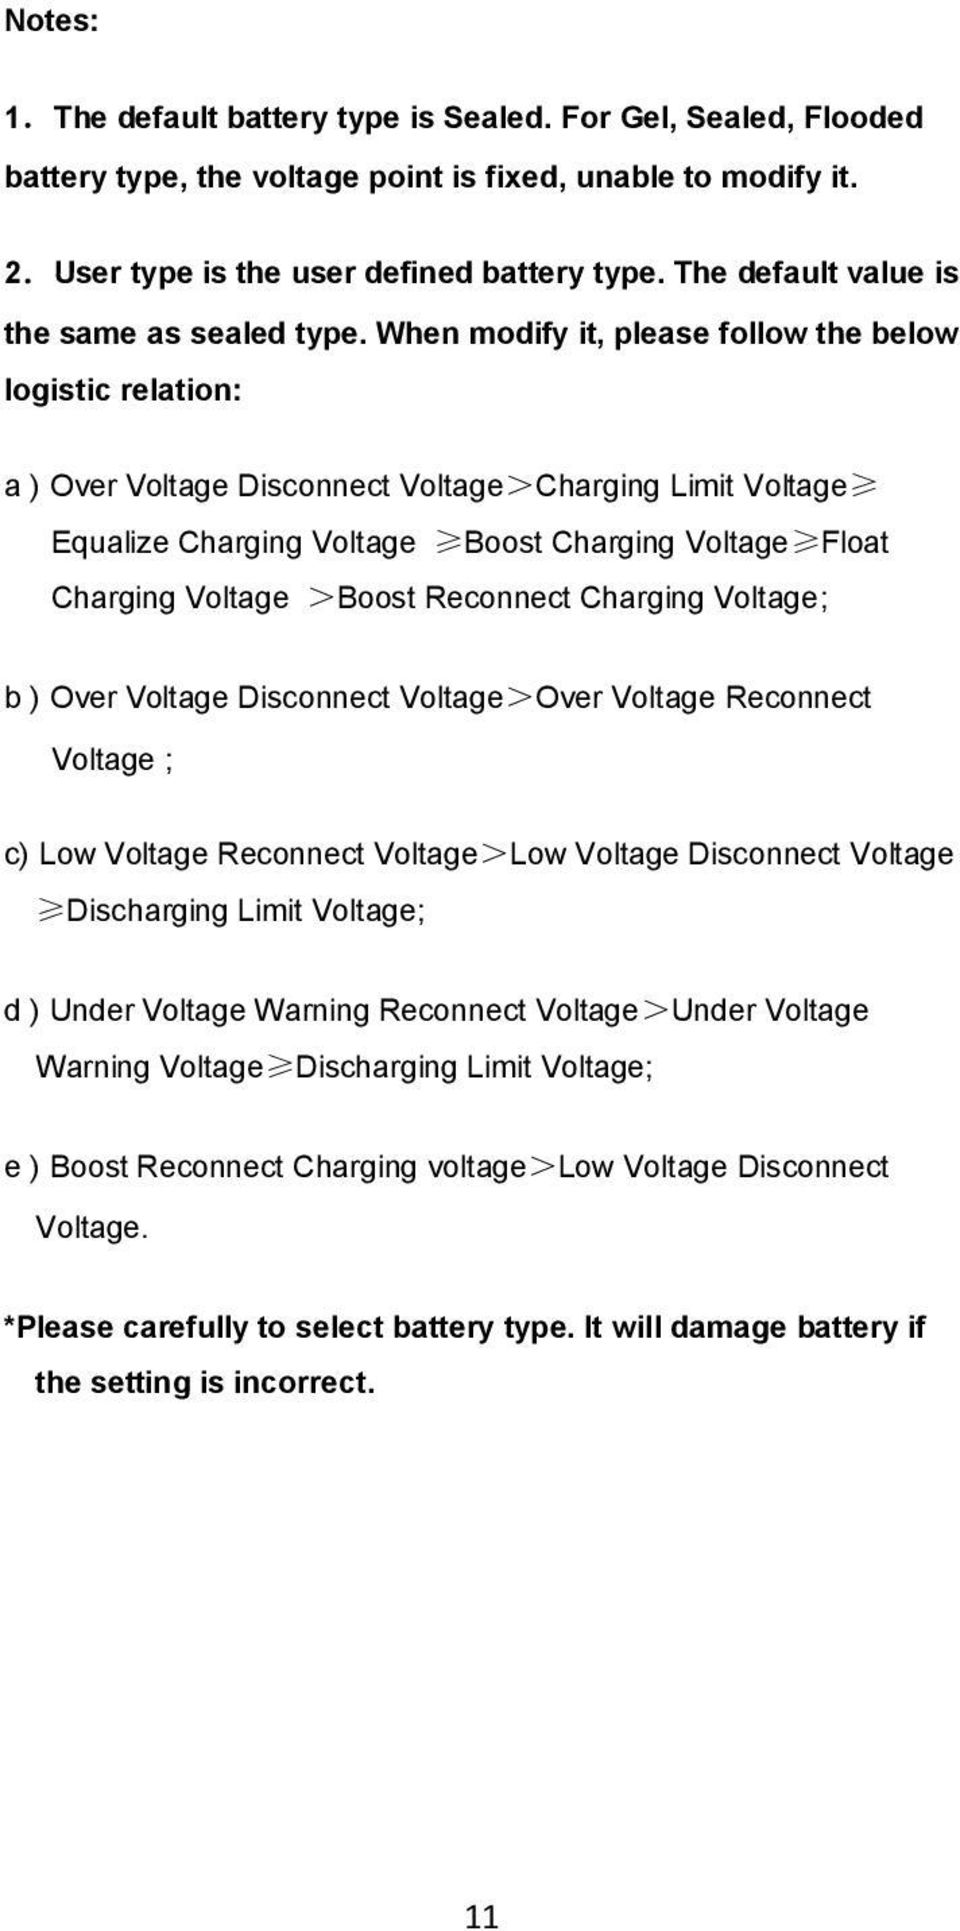 When modify it, please follow the below logistic relation: a ) Over Voltage Disconnect Voltage>Charging Limit Voltage Equalize Charging Voltage Boost Charging Voltage Float Charging Voltage >Boost